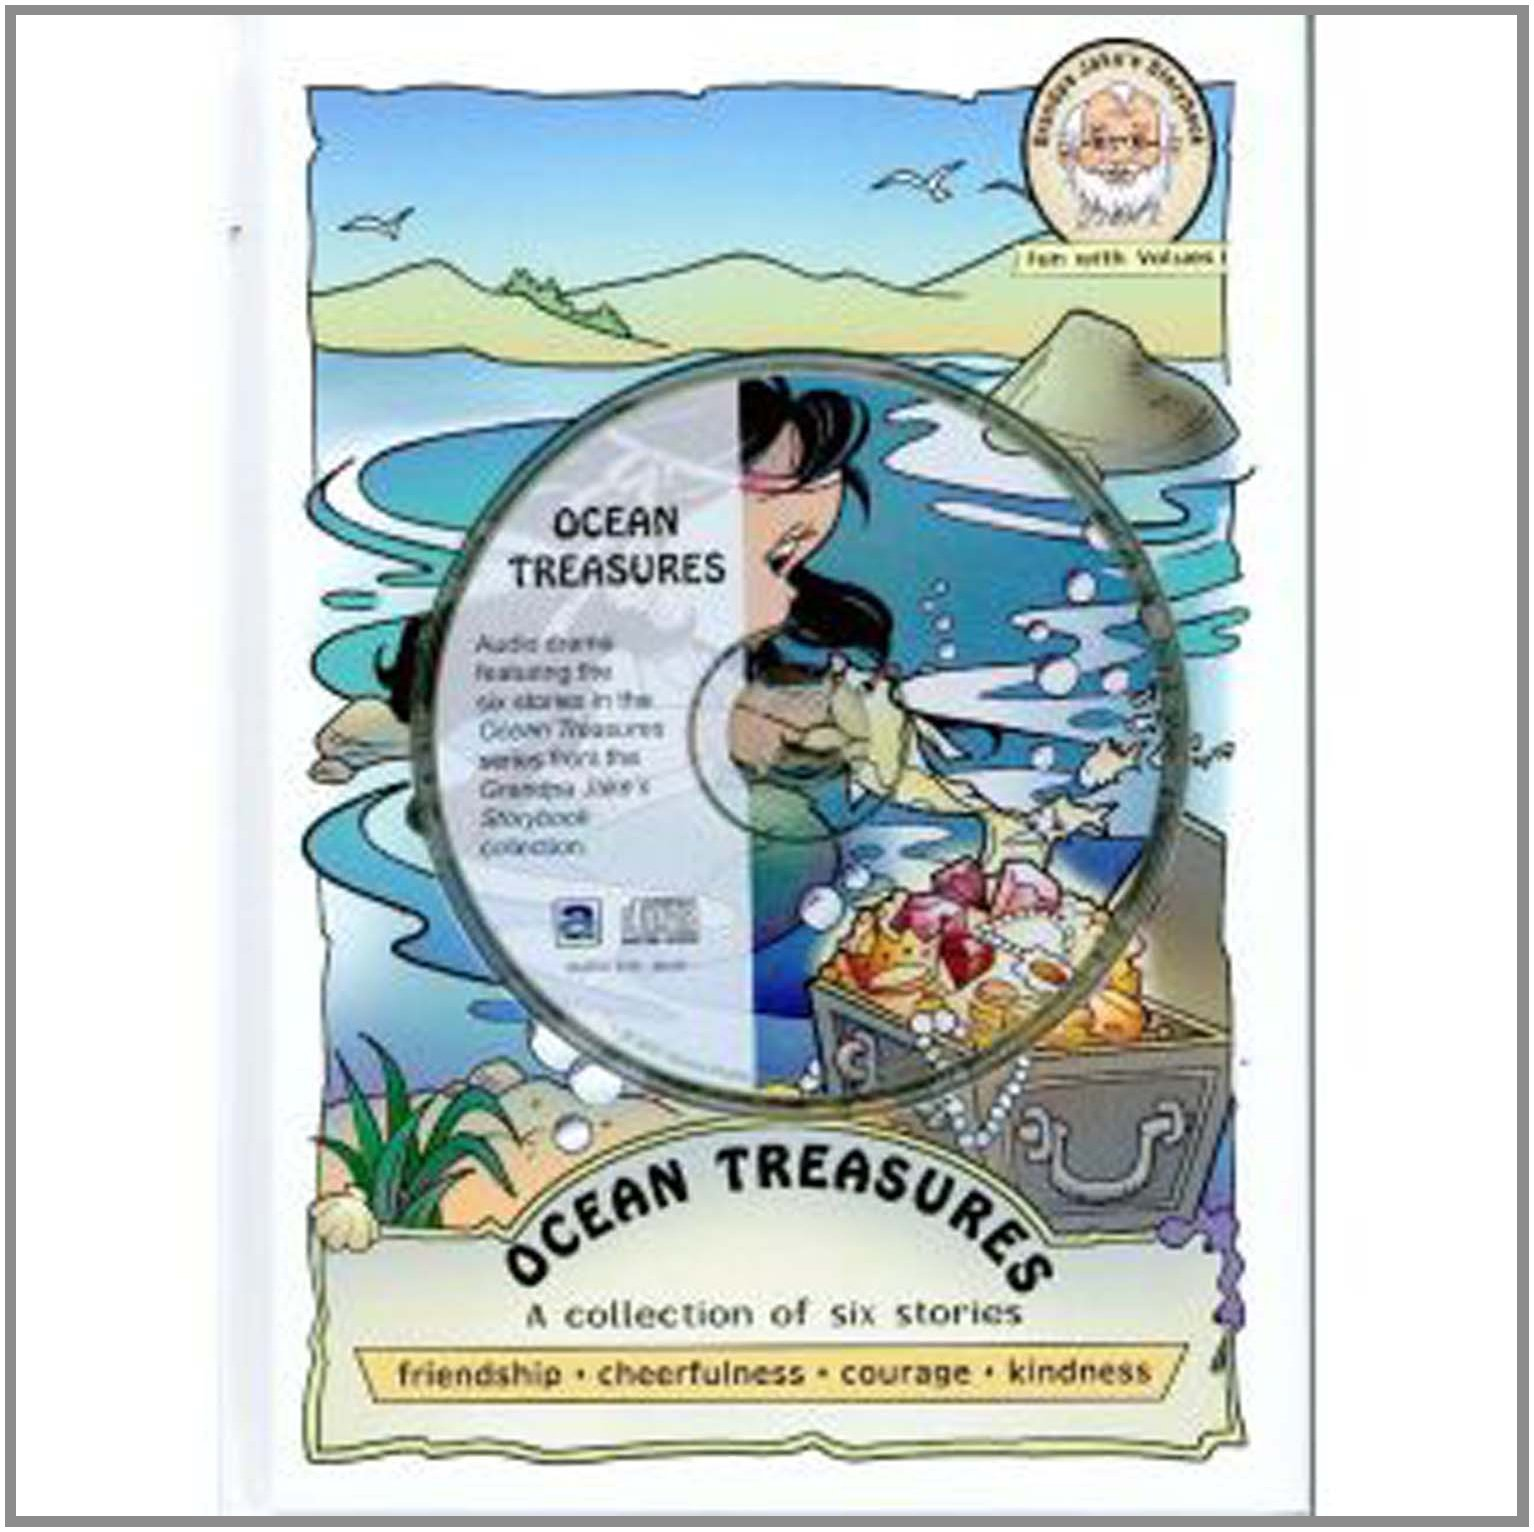 Ocean Treasures-Grandpa Jake's Hard Cover Kids Book-Plus Audio Book-Fun-Values-Friendship-Courtesy-Courage-Prayer-Short Stories for ... Kids-Helping Other (Grandpa Jake's Storybook) ebook